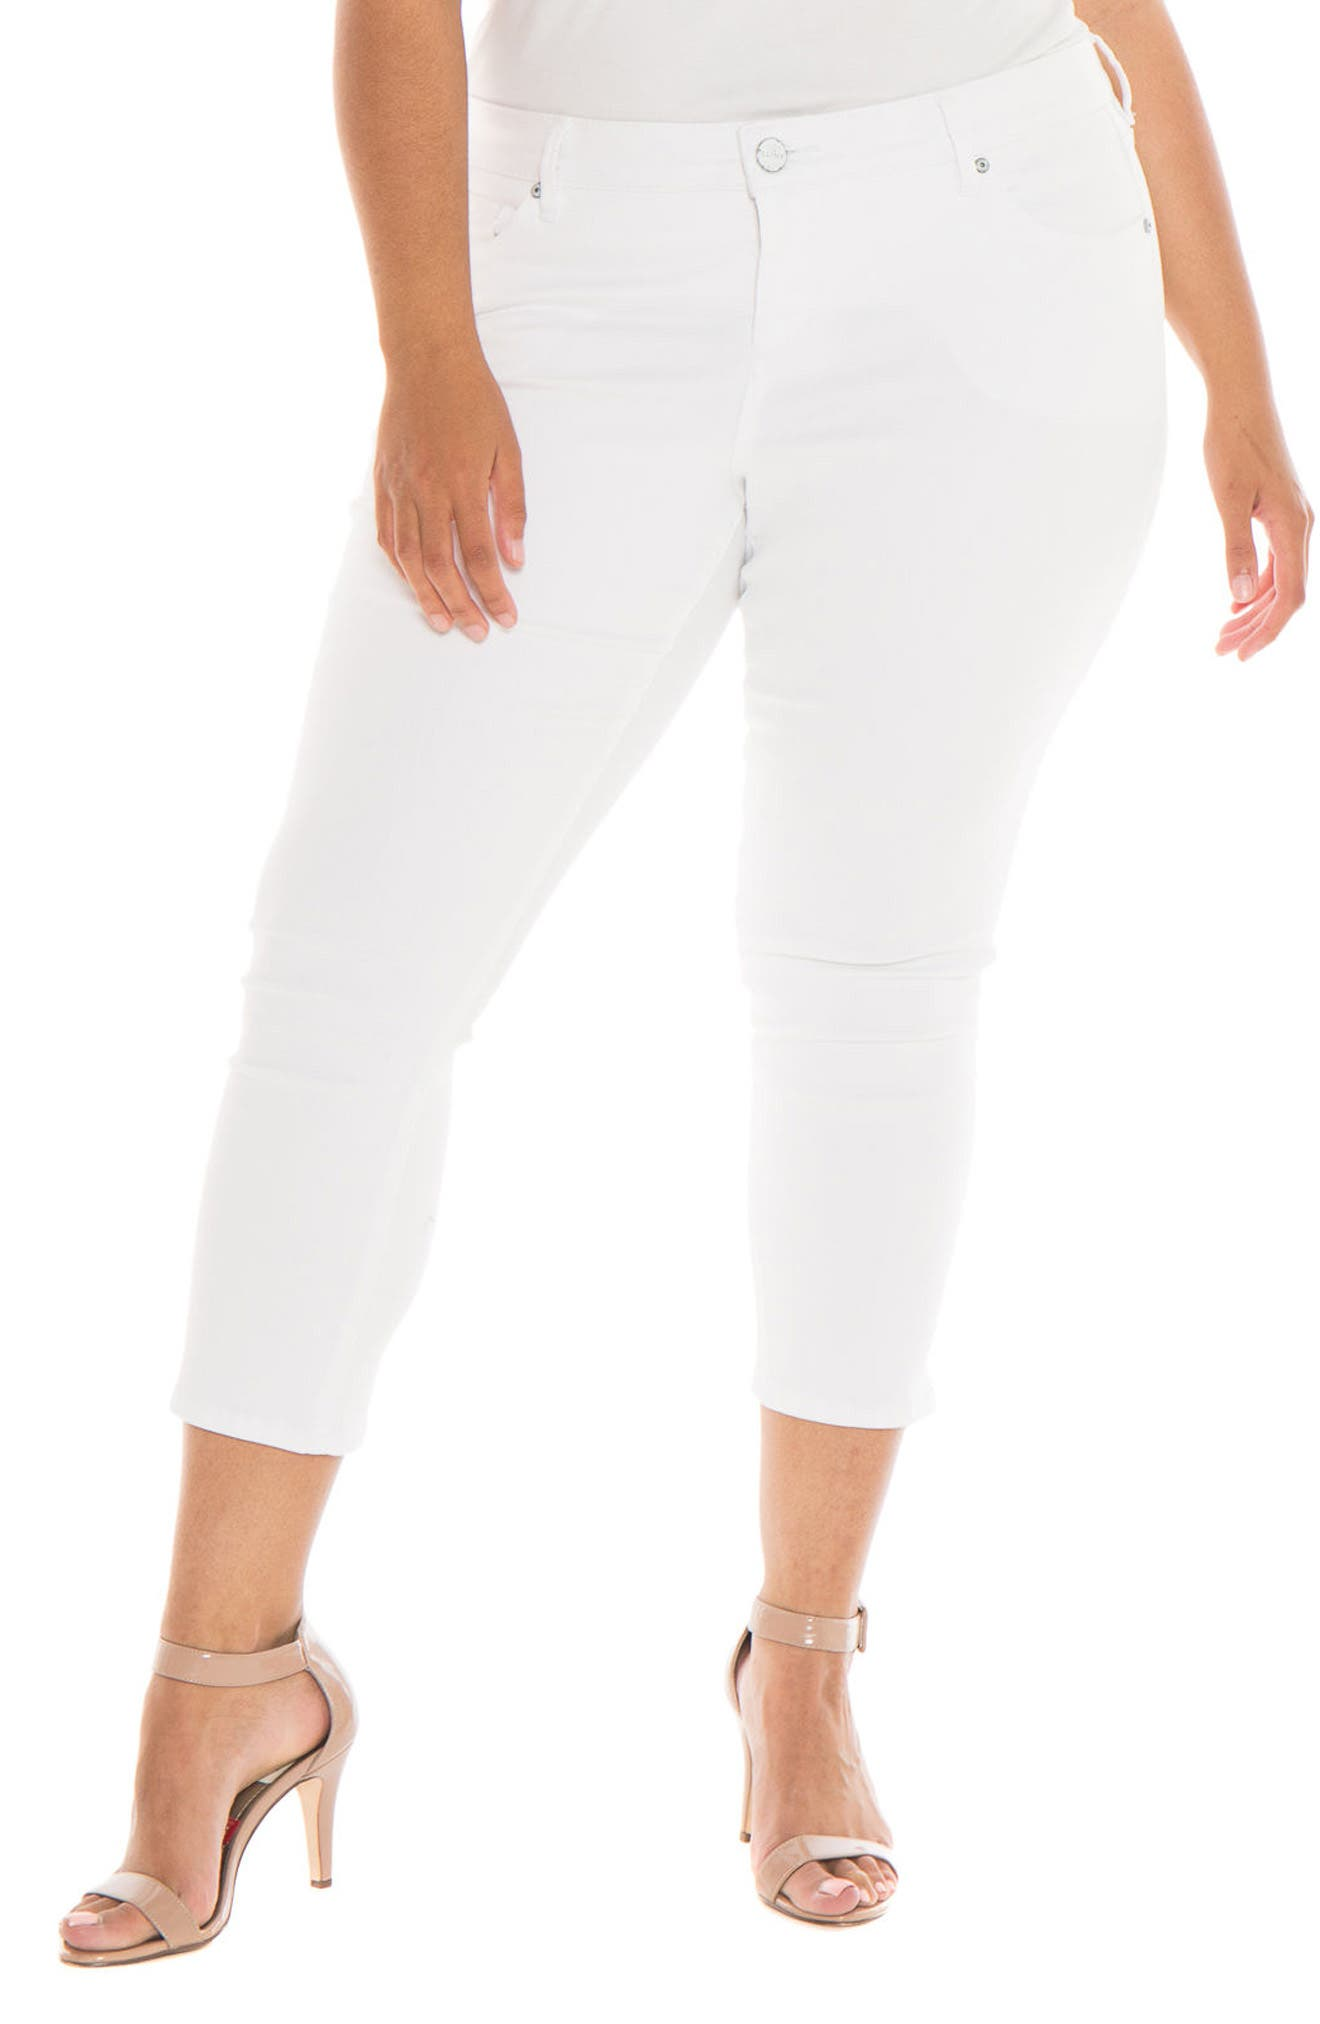 Main Image - SLINK Jeans Crop Skinny Jeans (Charlie) (Plus Size)